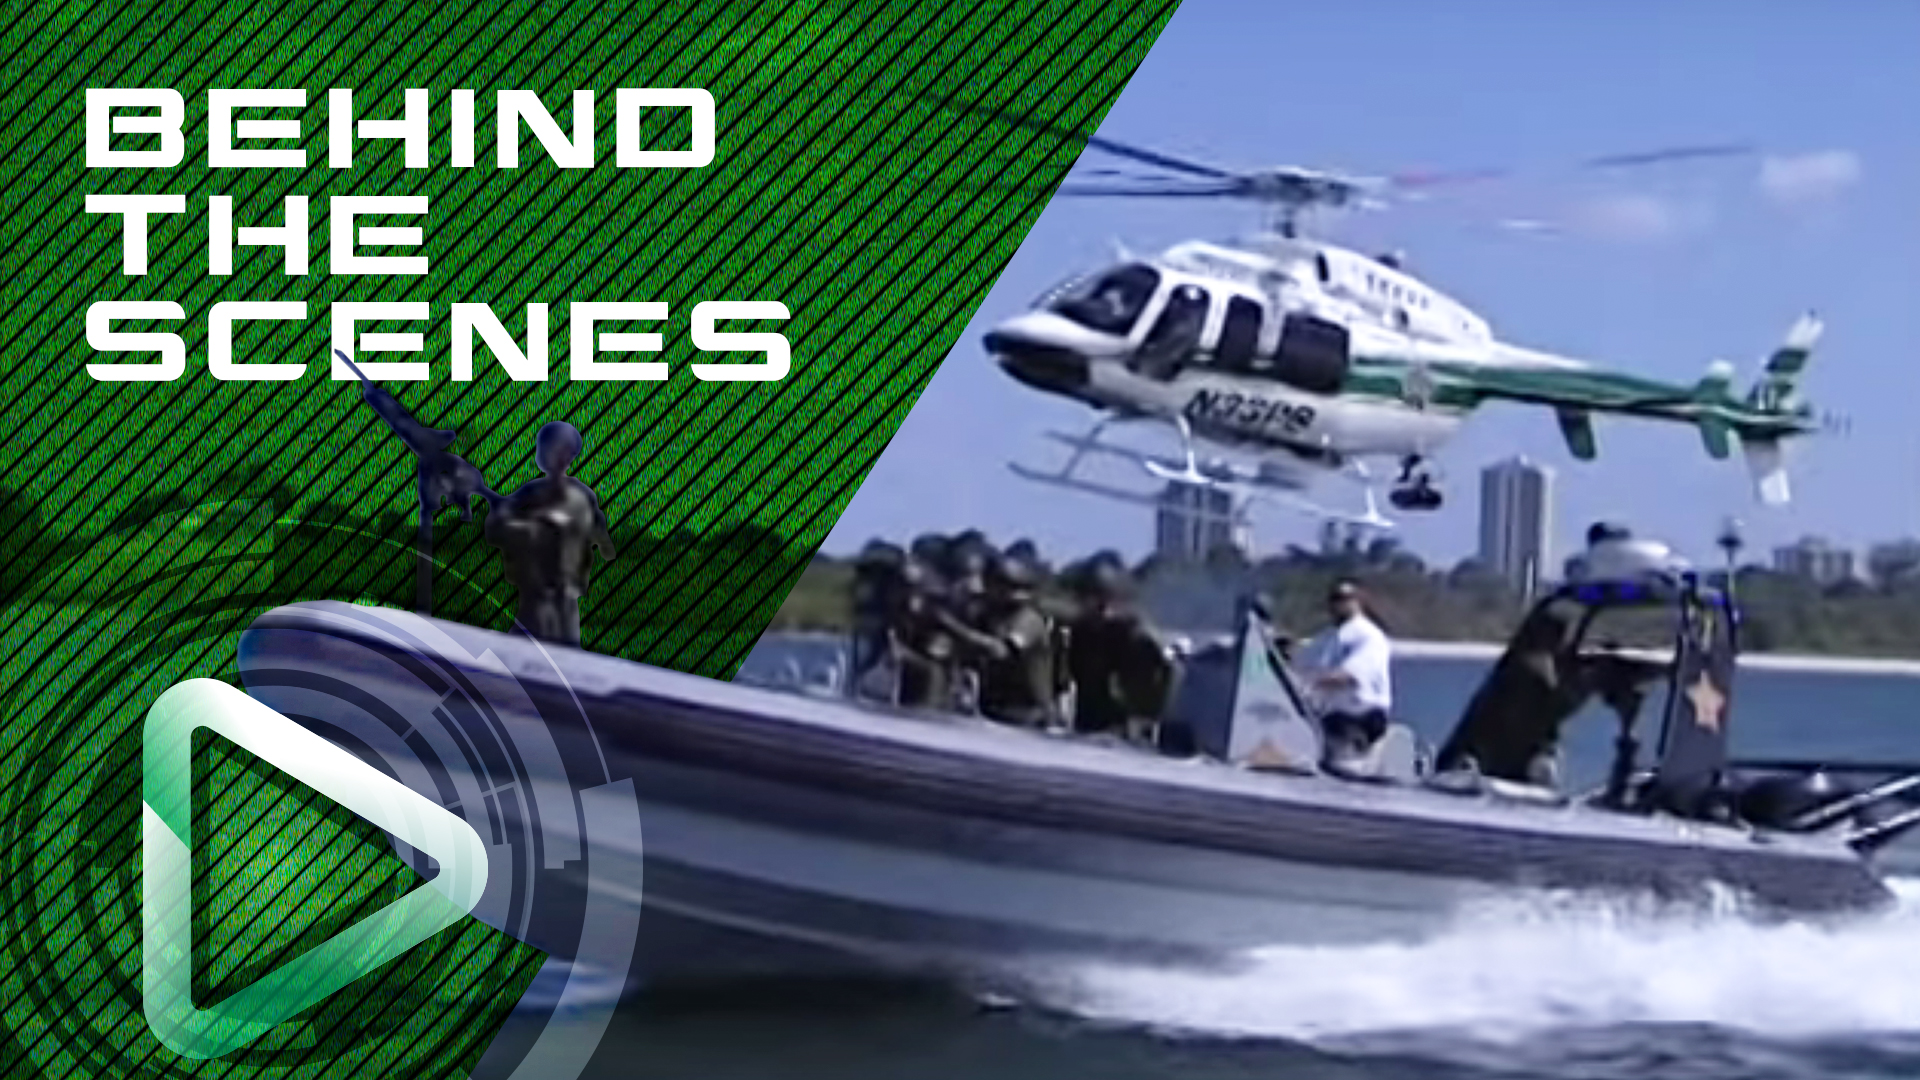 PBSO Behind The Scenes banner